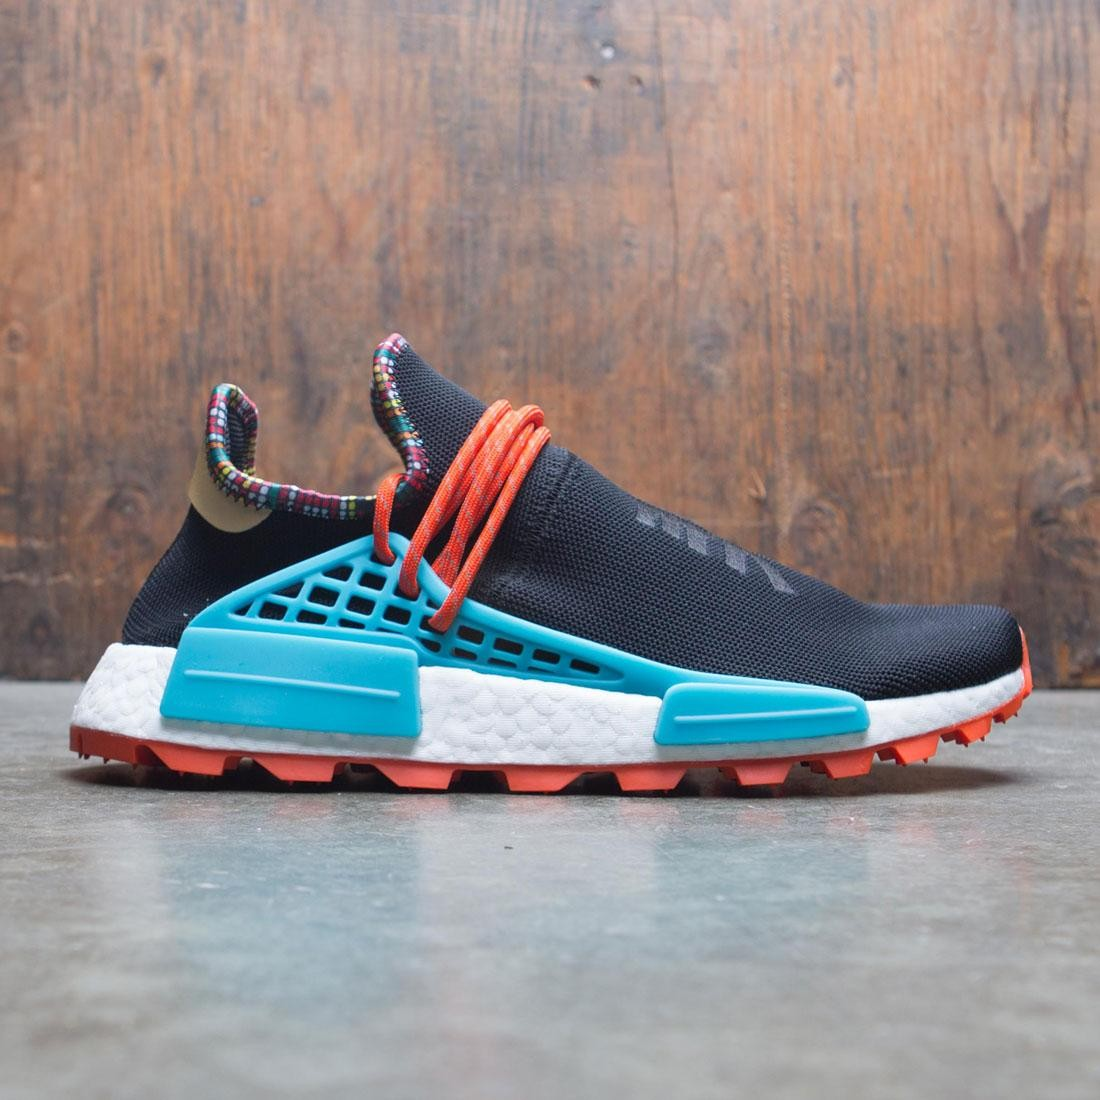 Adidas x Pharrell Williams Men Solar HU NMD (black / clear blue / collegiate orange)